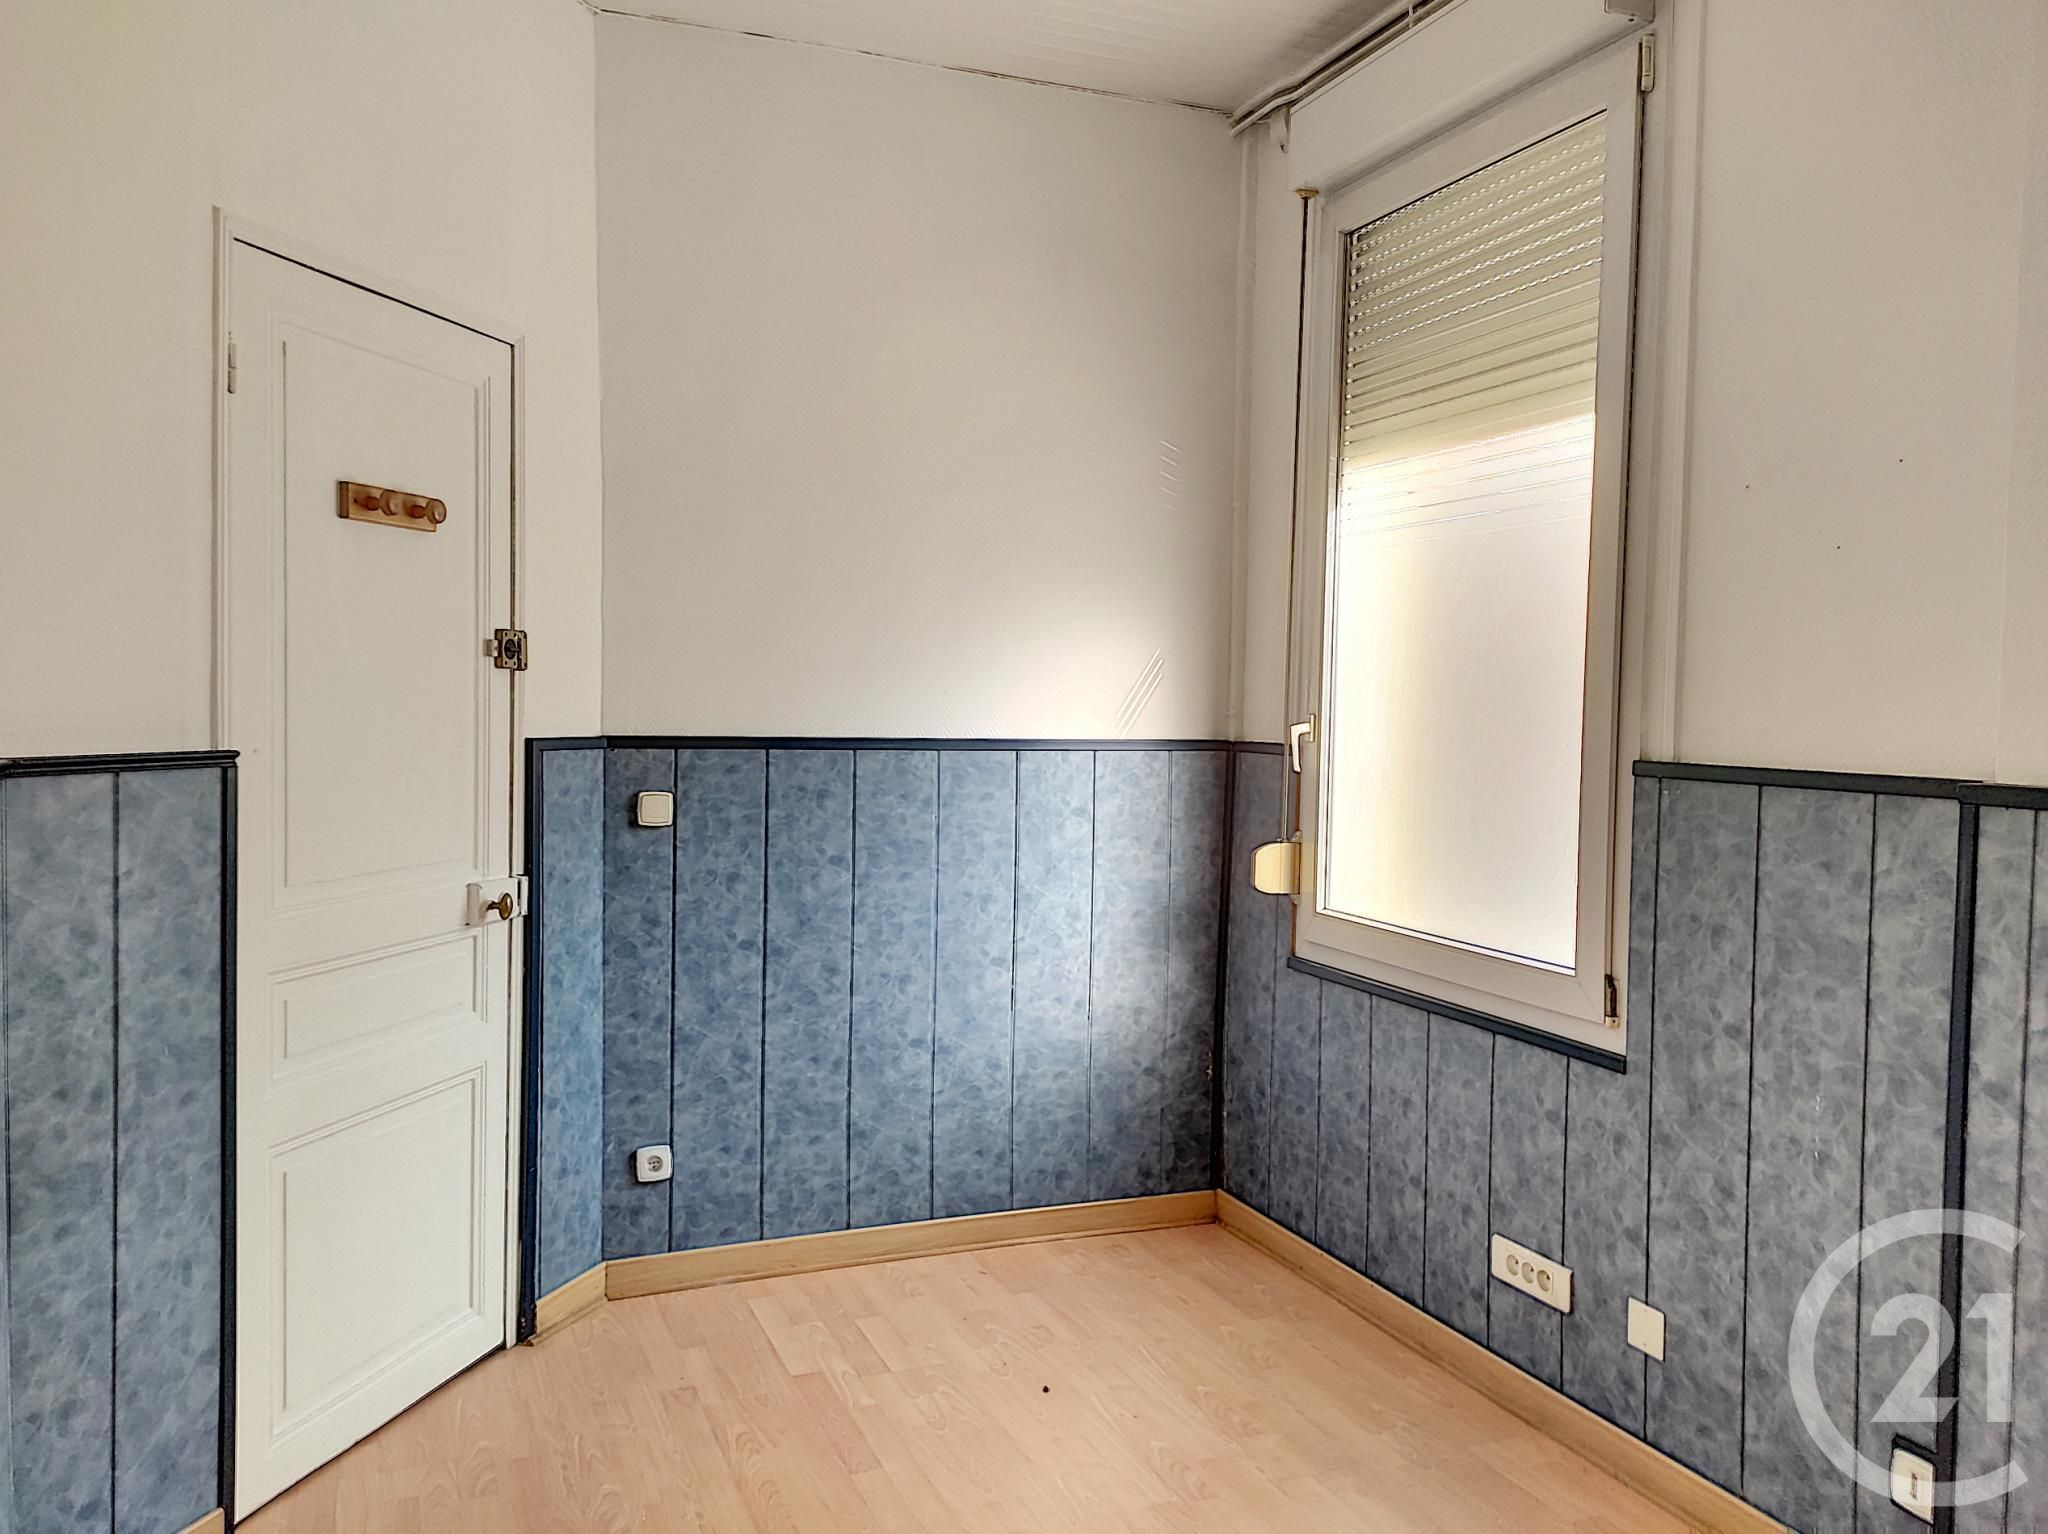 Appartement à vendre - 3 pièces - 39,76 m2 - EPERNAY - 51 - CHAMPAGNE-ARDENNE